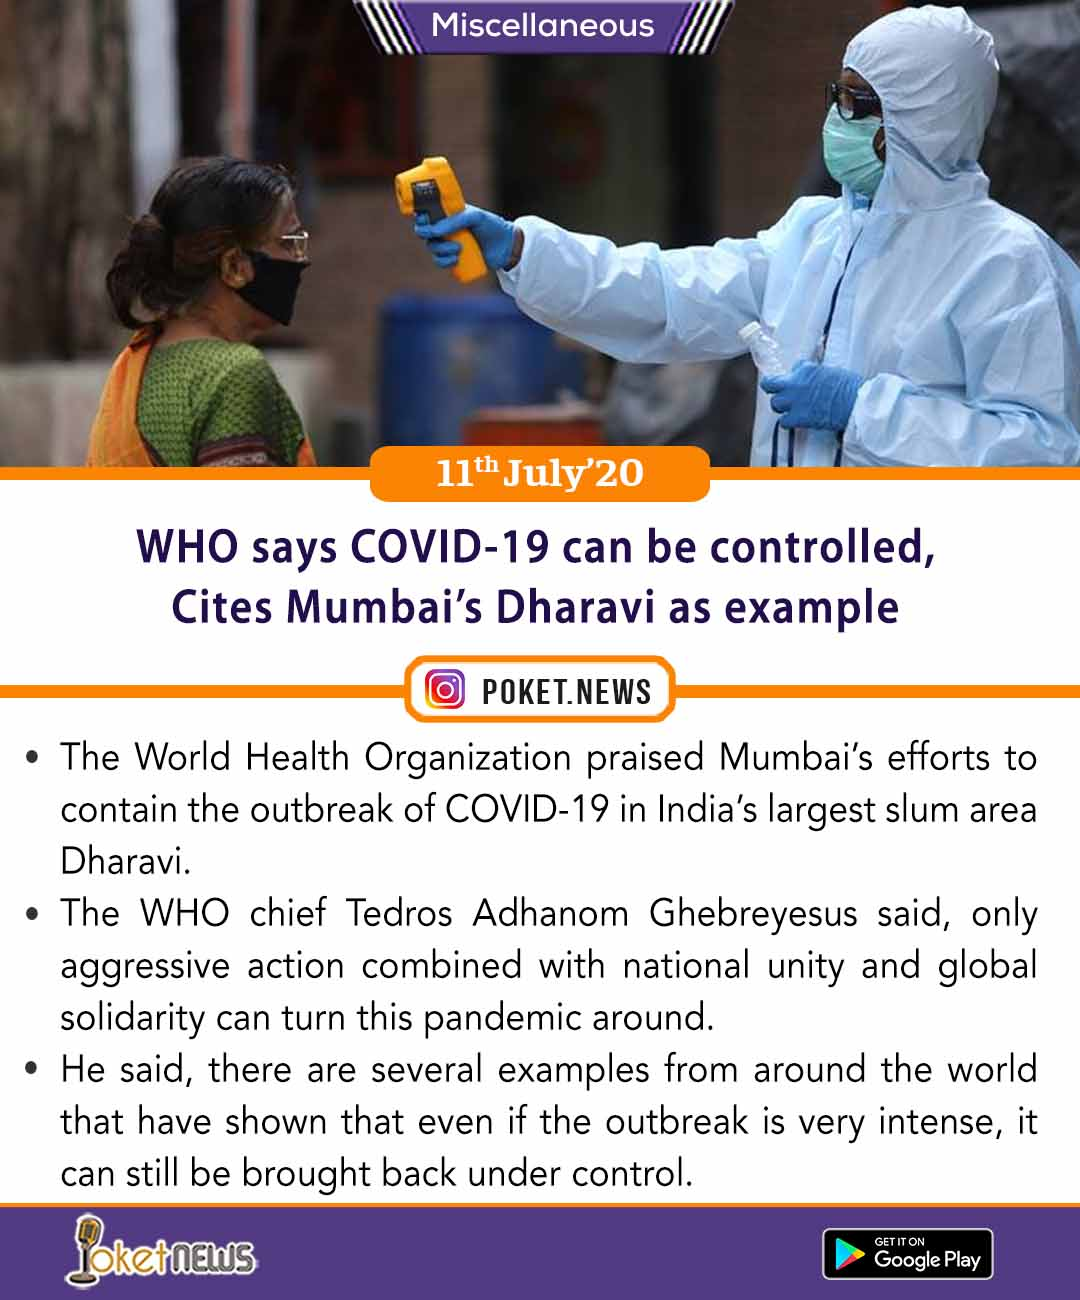 WHO says COVID-19 can be controlled, Cites Mumbai's Dharavi as example